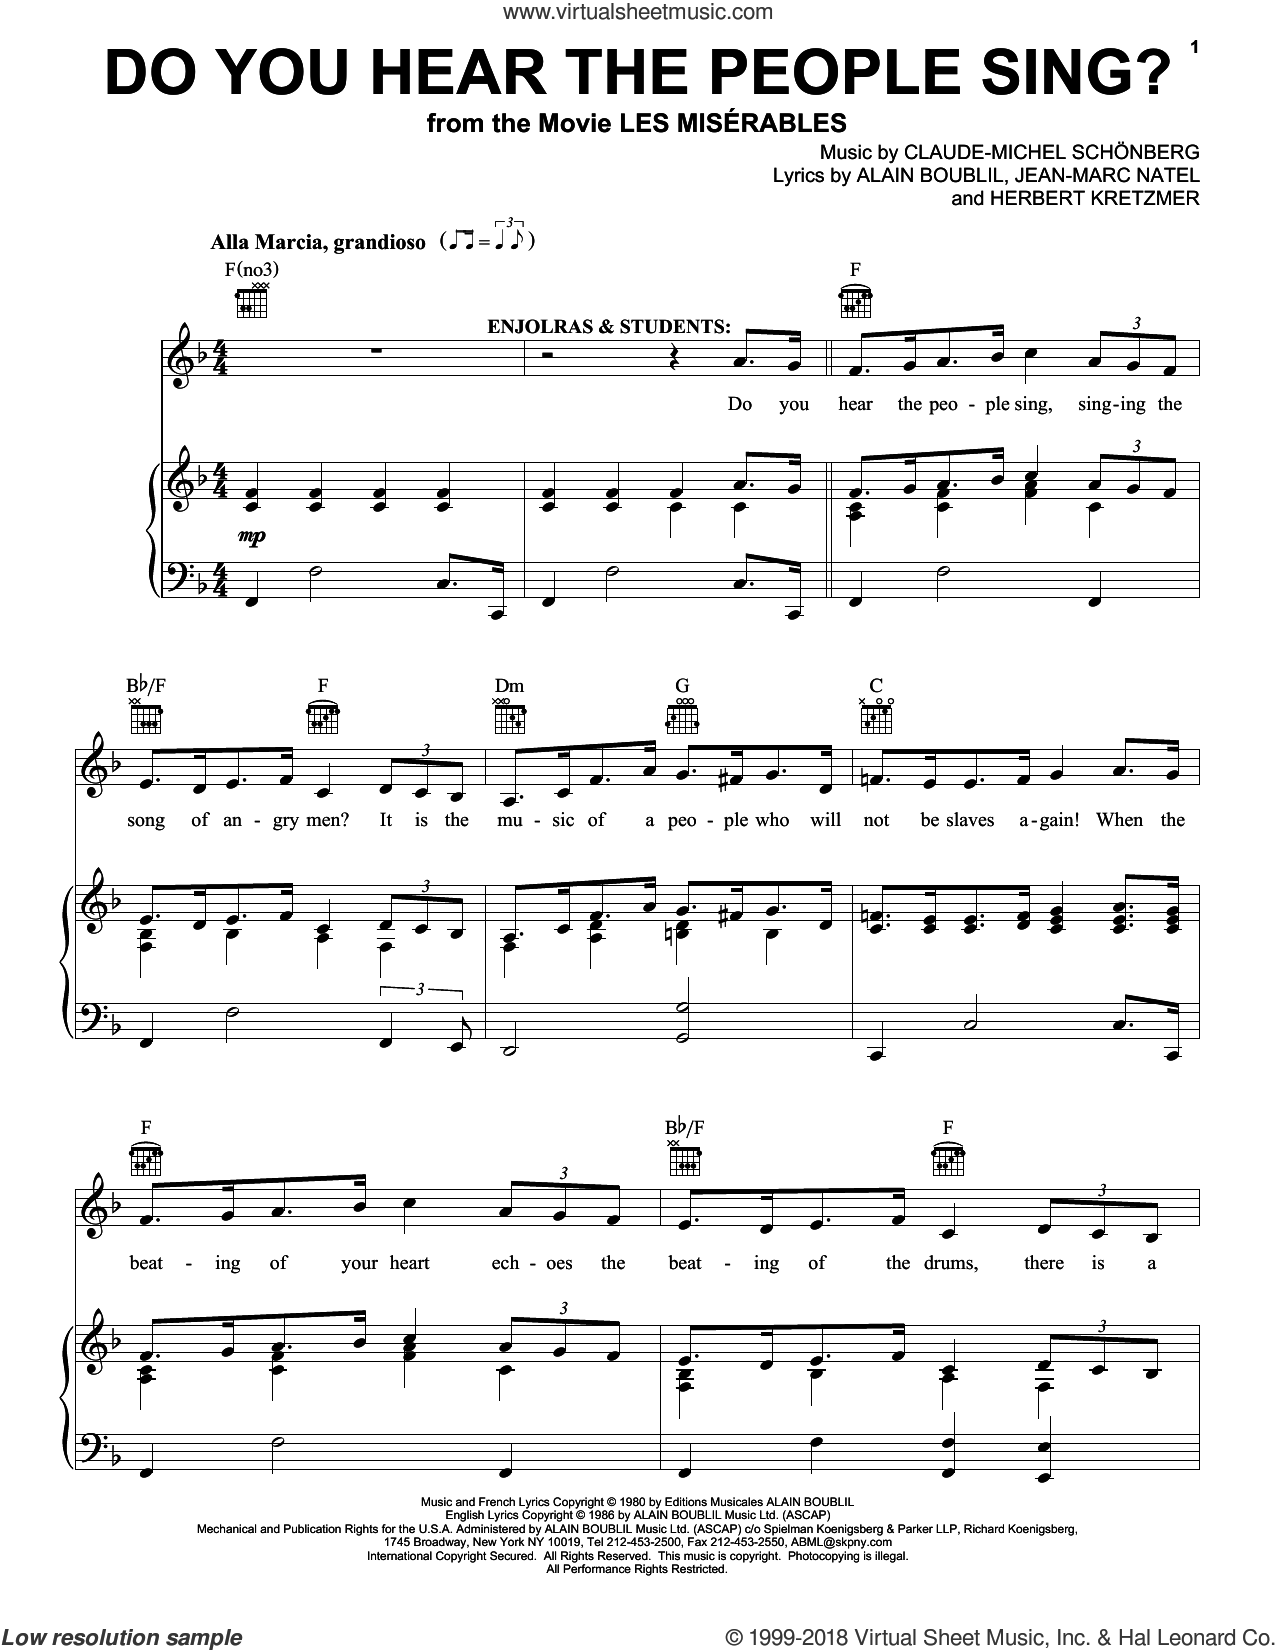 Do You Hear The People Sing? sheet music for voice, piano or guitar by Claude-Michel Schonberg, Alain Boublil and Herbert Kretzmer, intermediate skill level